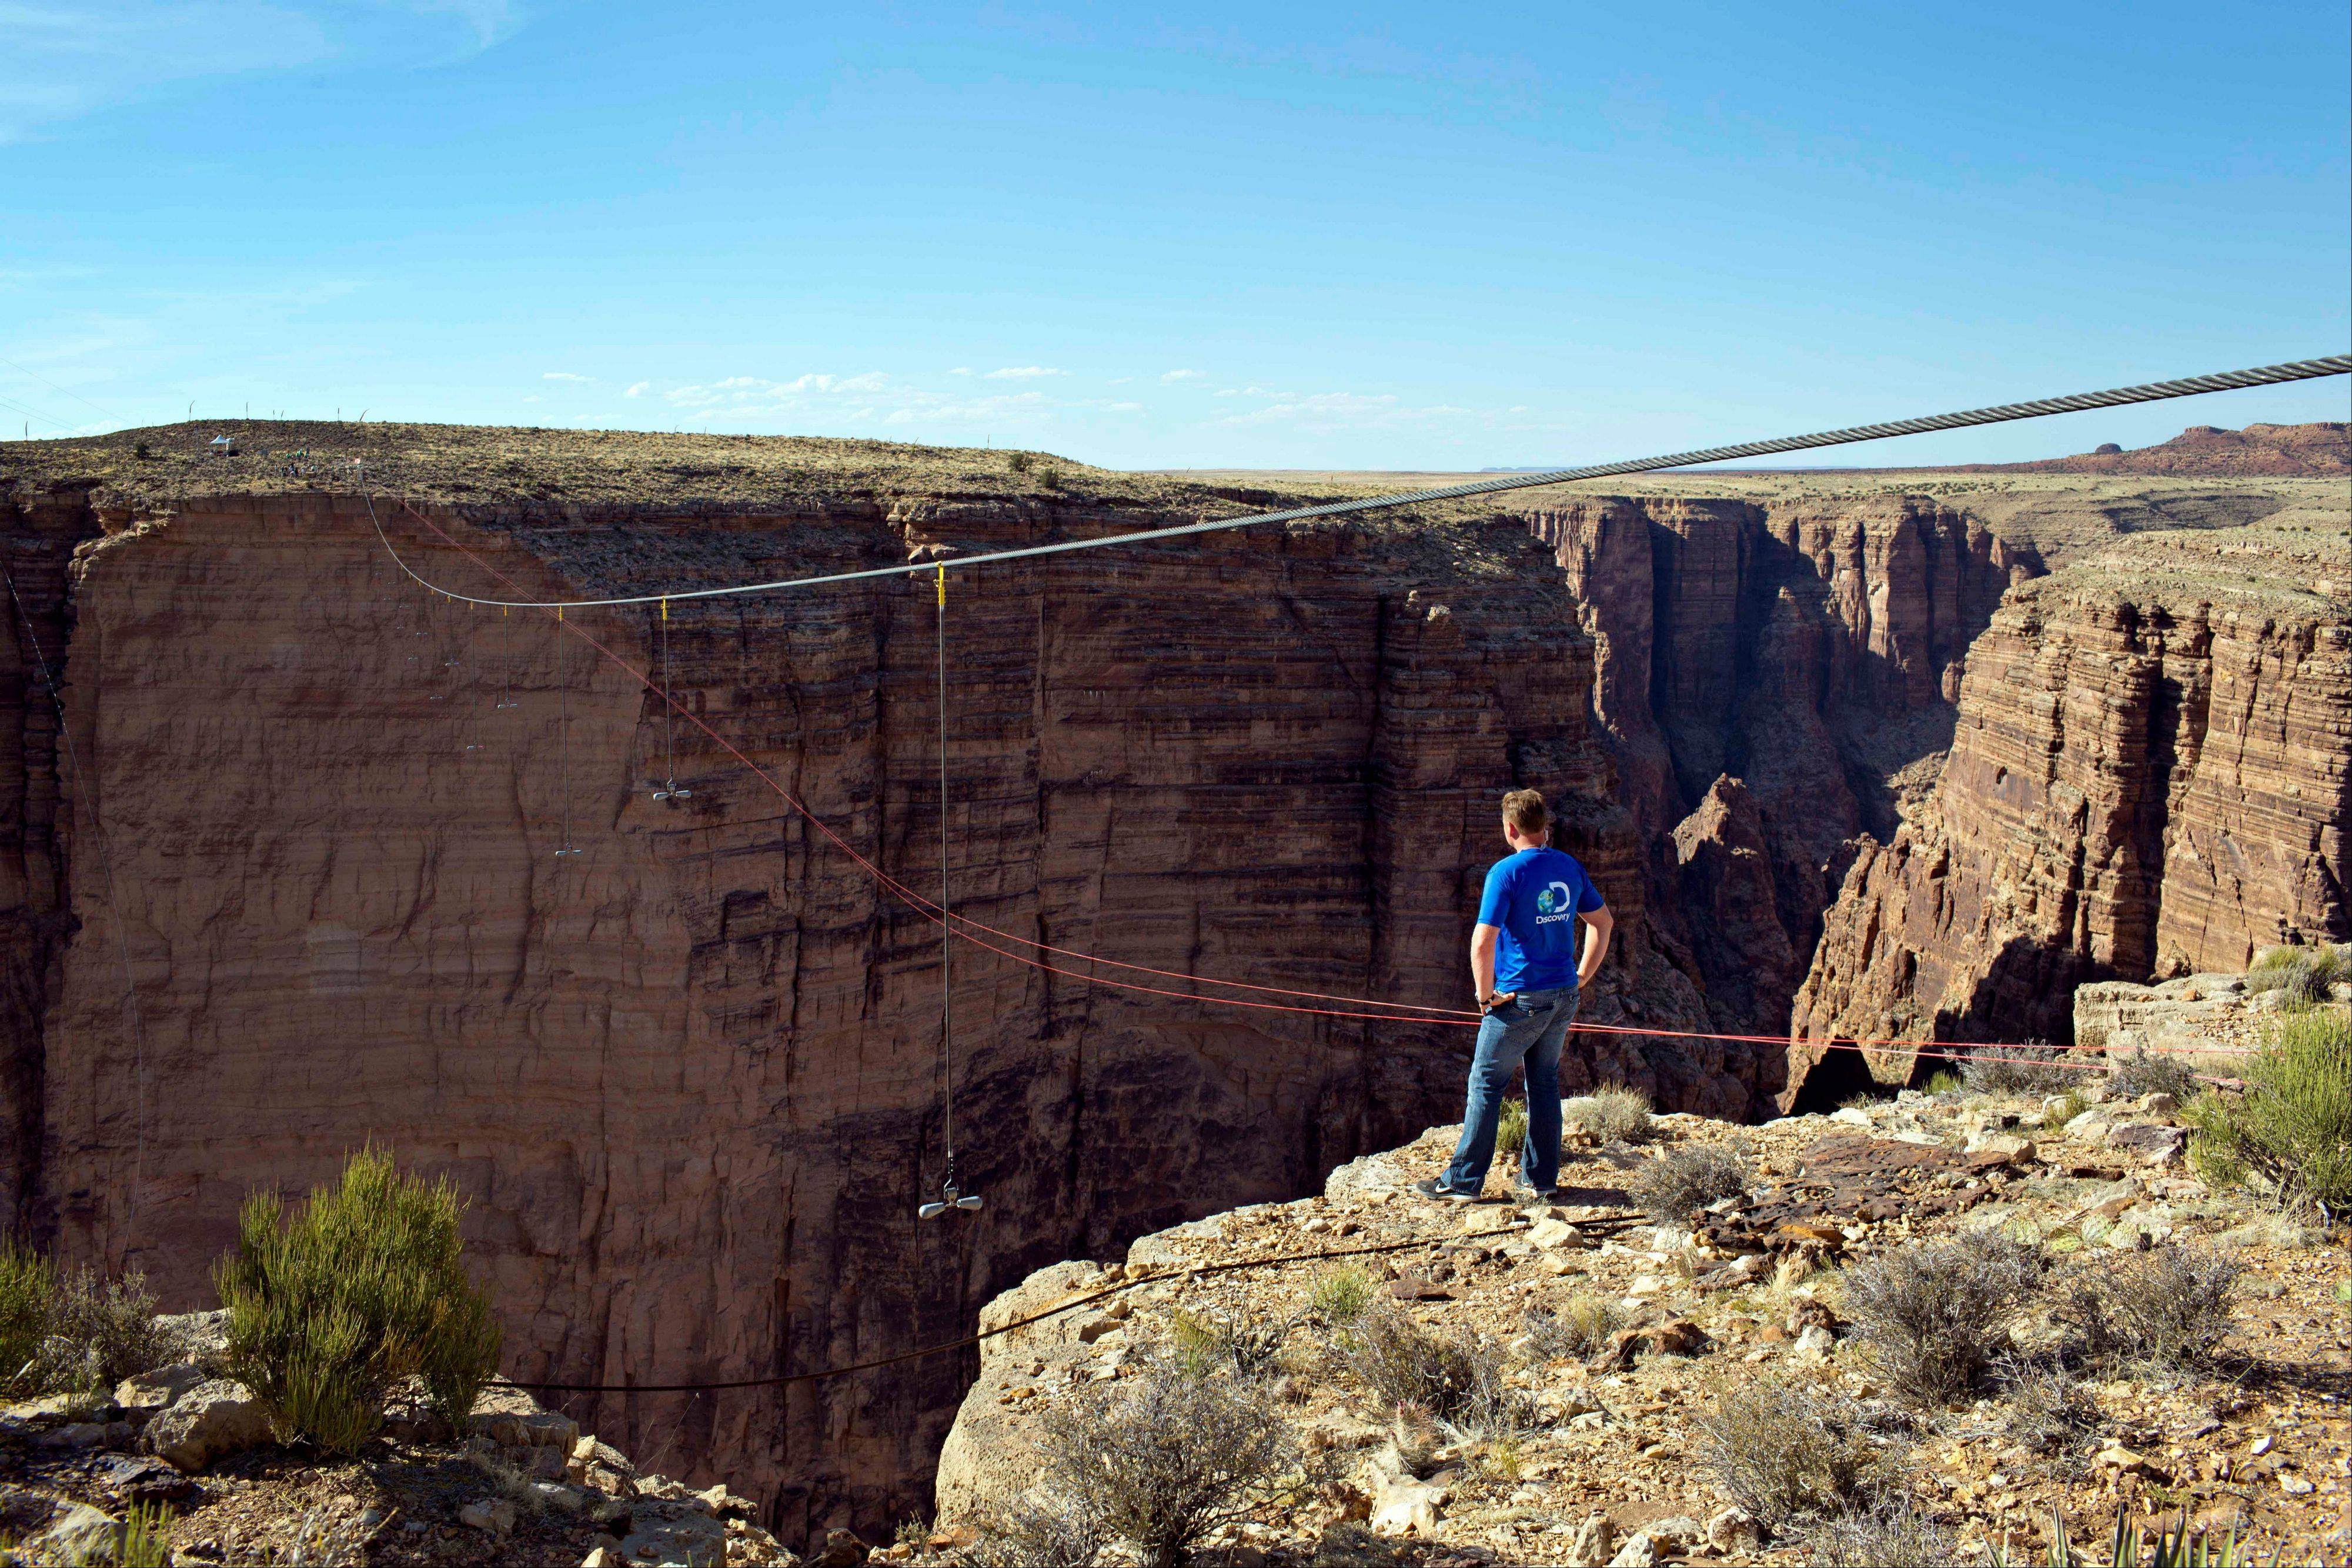 Aerialist Nik Wallenda looks across the canyon before walking a 2-inch-thick steel cable that took him a quarter mile over the Little Colorado River Gorge in northeastern Arizona on Sunday, June 23, 2013. The daredevil successfully traversed the tightrope strung 1,500 feet above the chasm near the Grand Canyon in just more than 22 minutes, pausing and crouching twice as winds whipped around him and the cable swayed.